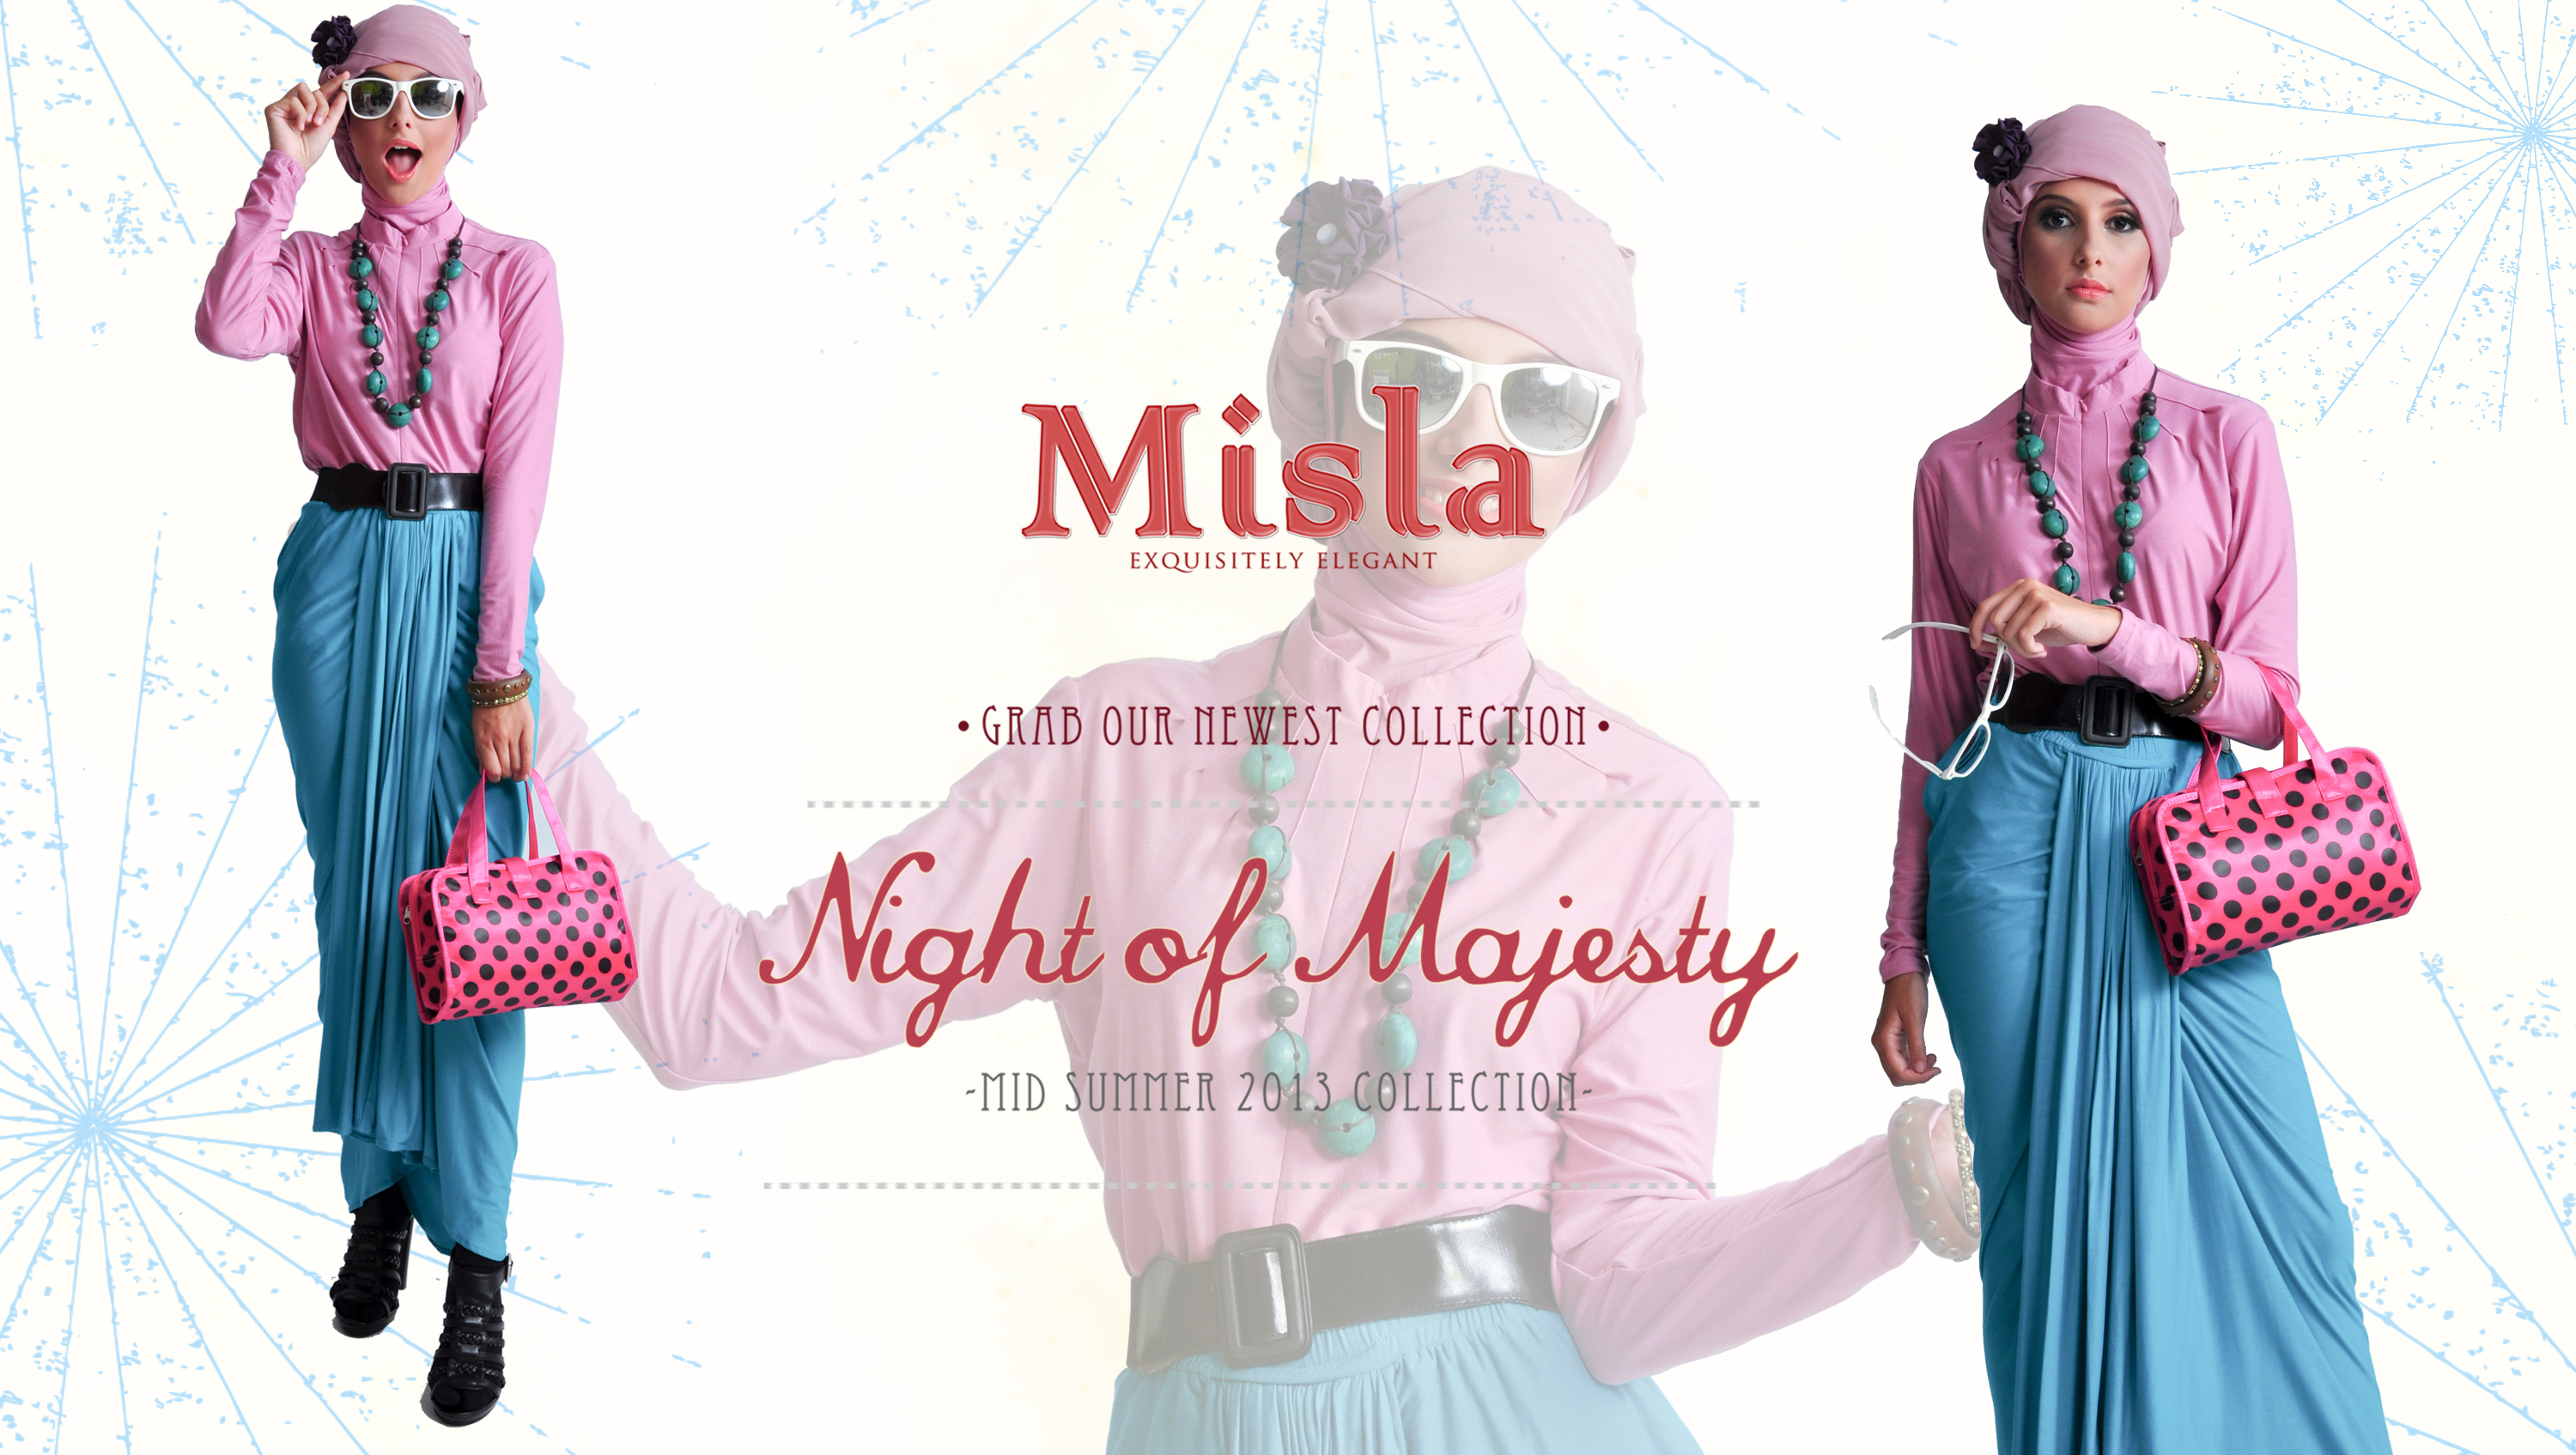 nom-lookbook-5-7 Night of Majesty: The Story Behind